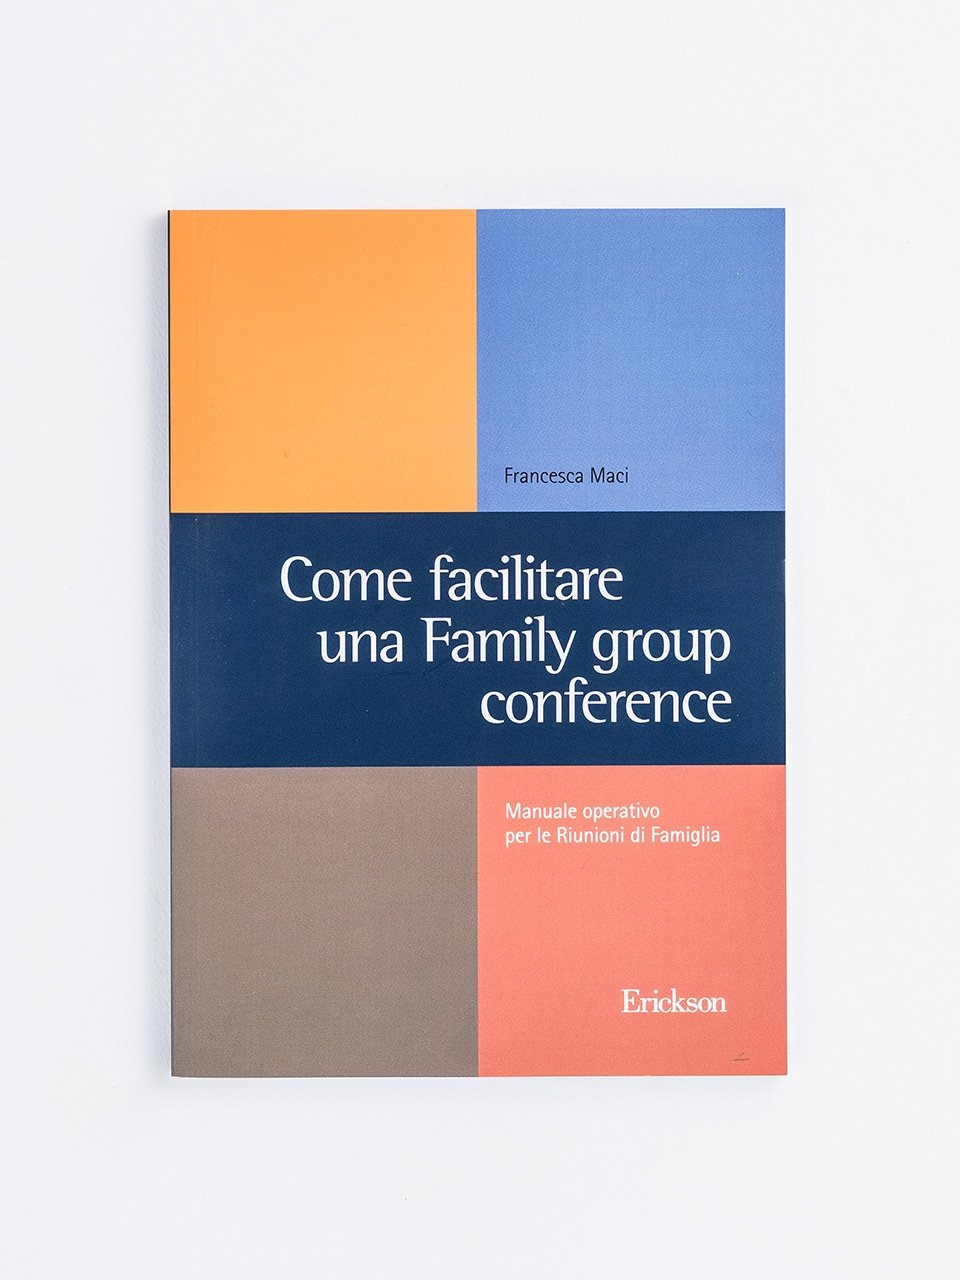 Come facilitare una Family group conference - Educare con gli asini - Libri - Erickson